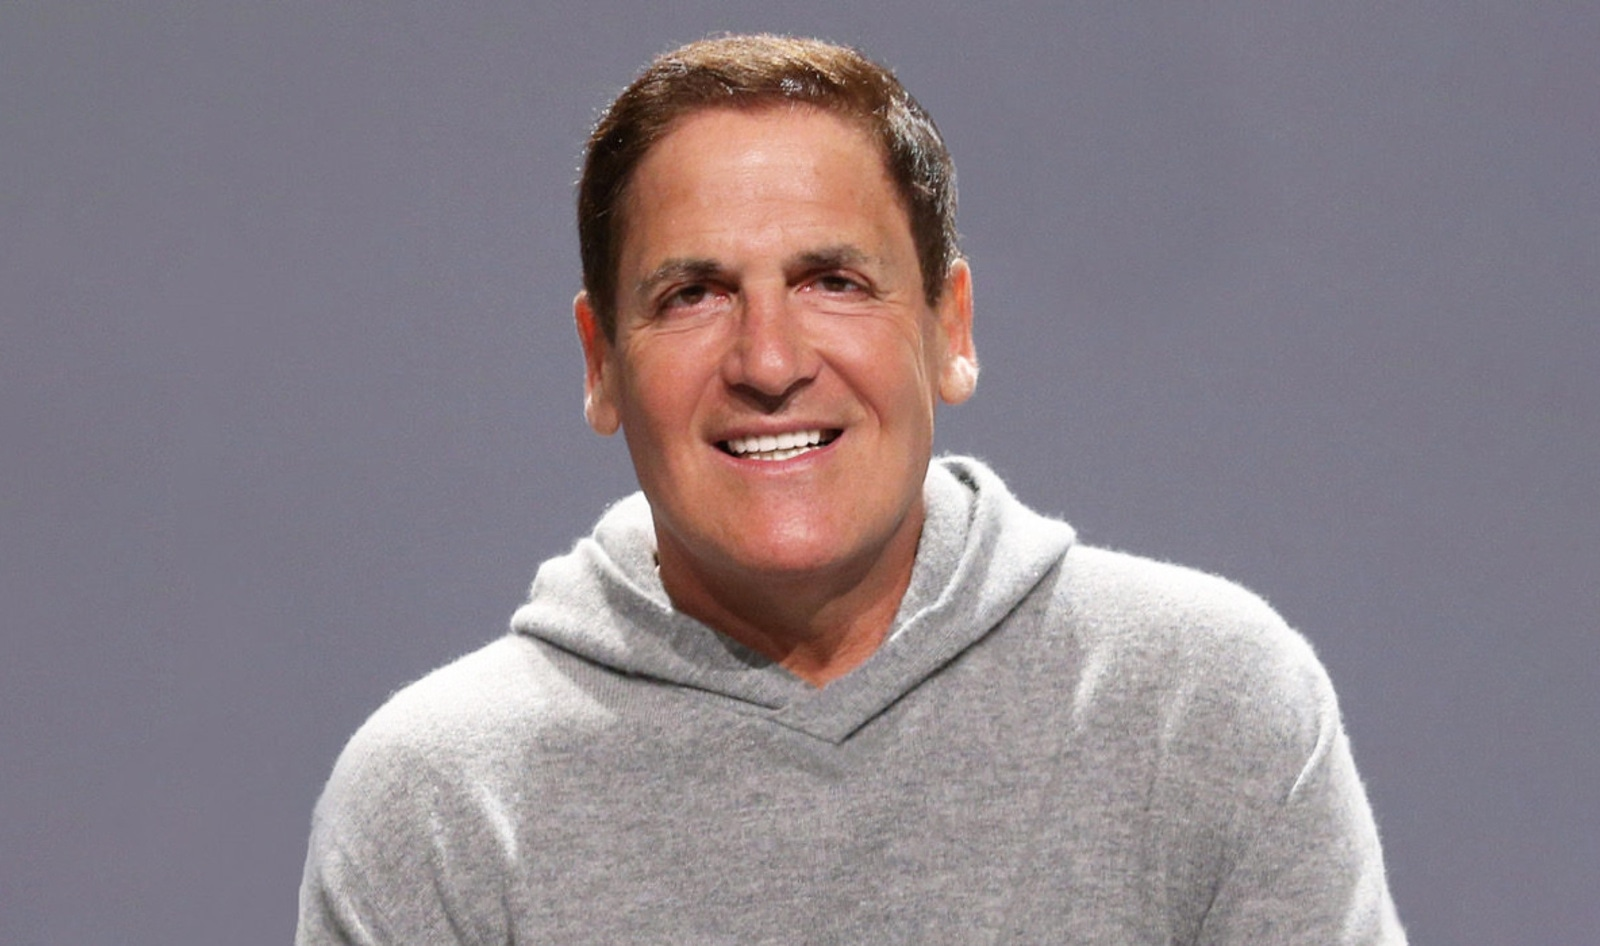 Vegan Dog Food Brand Wild Earth's Shark Tank Deal with Mark Cuban Continues with New $23 Million Investment